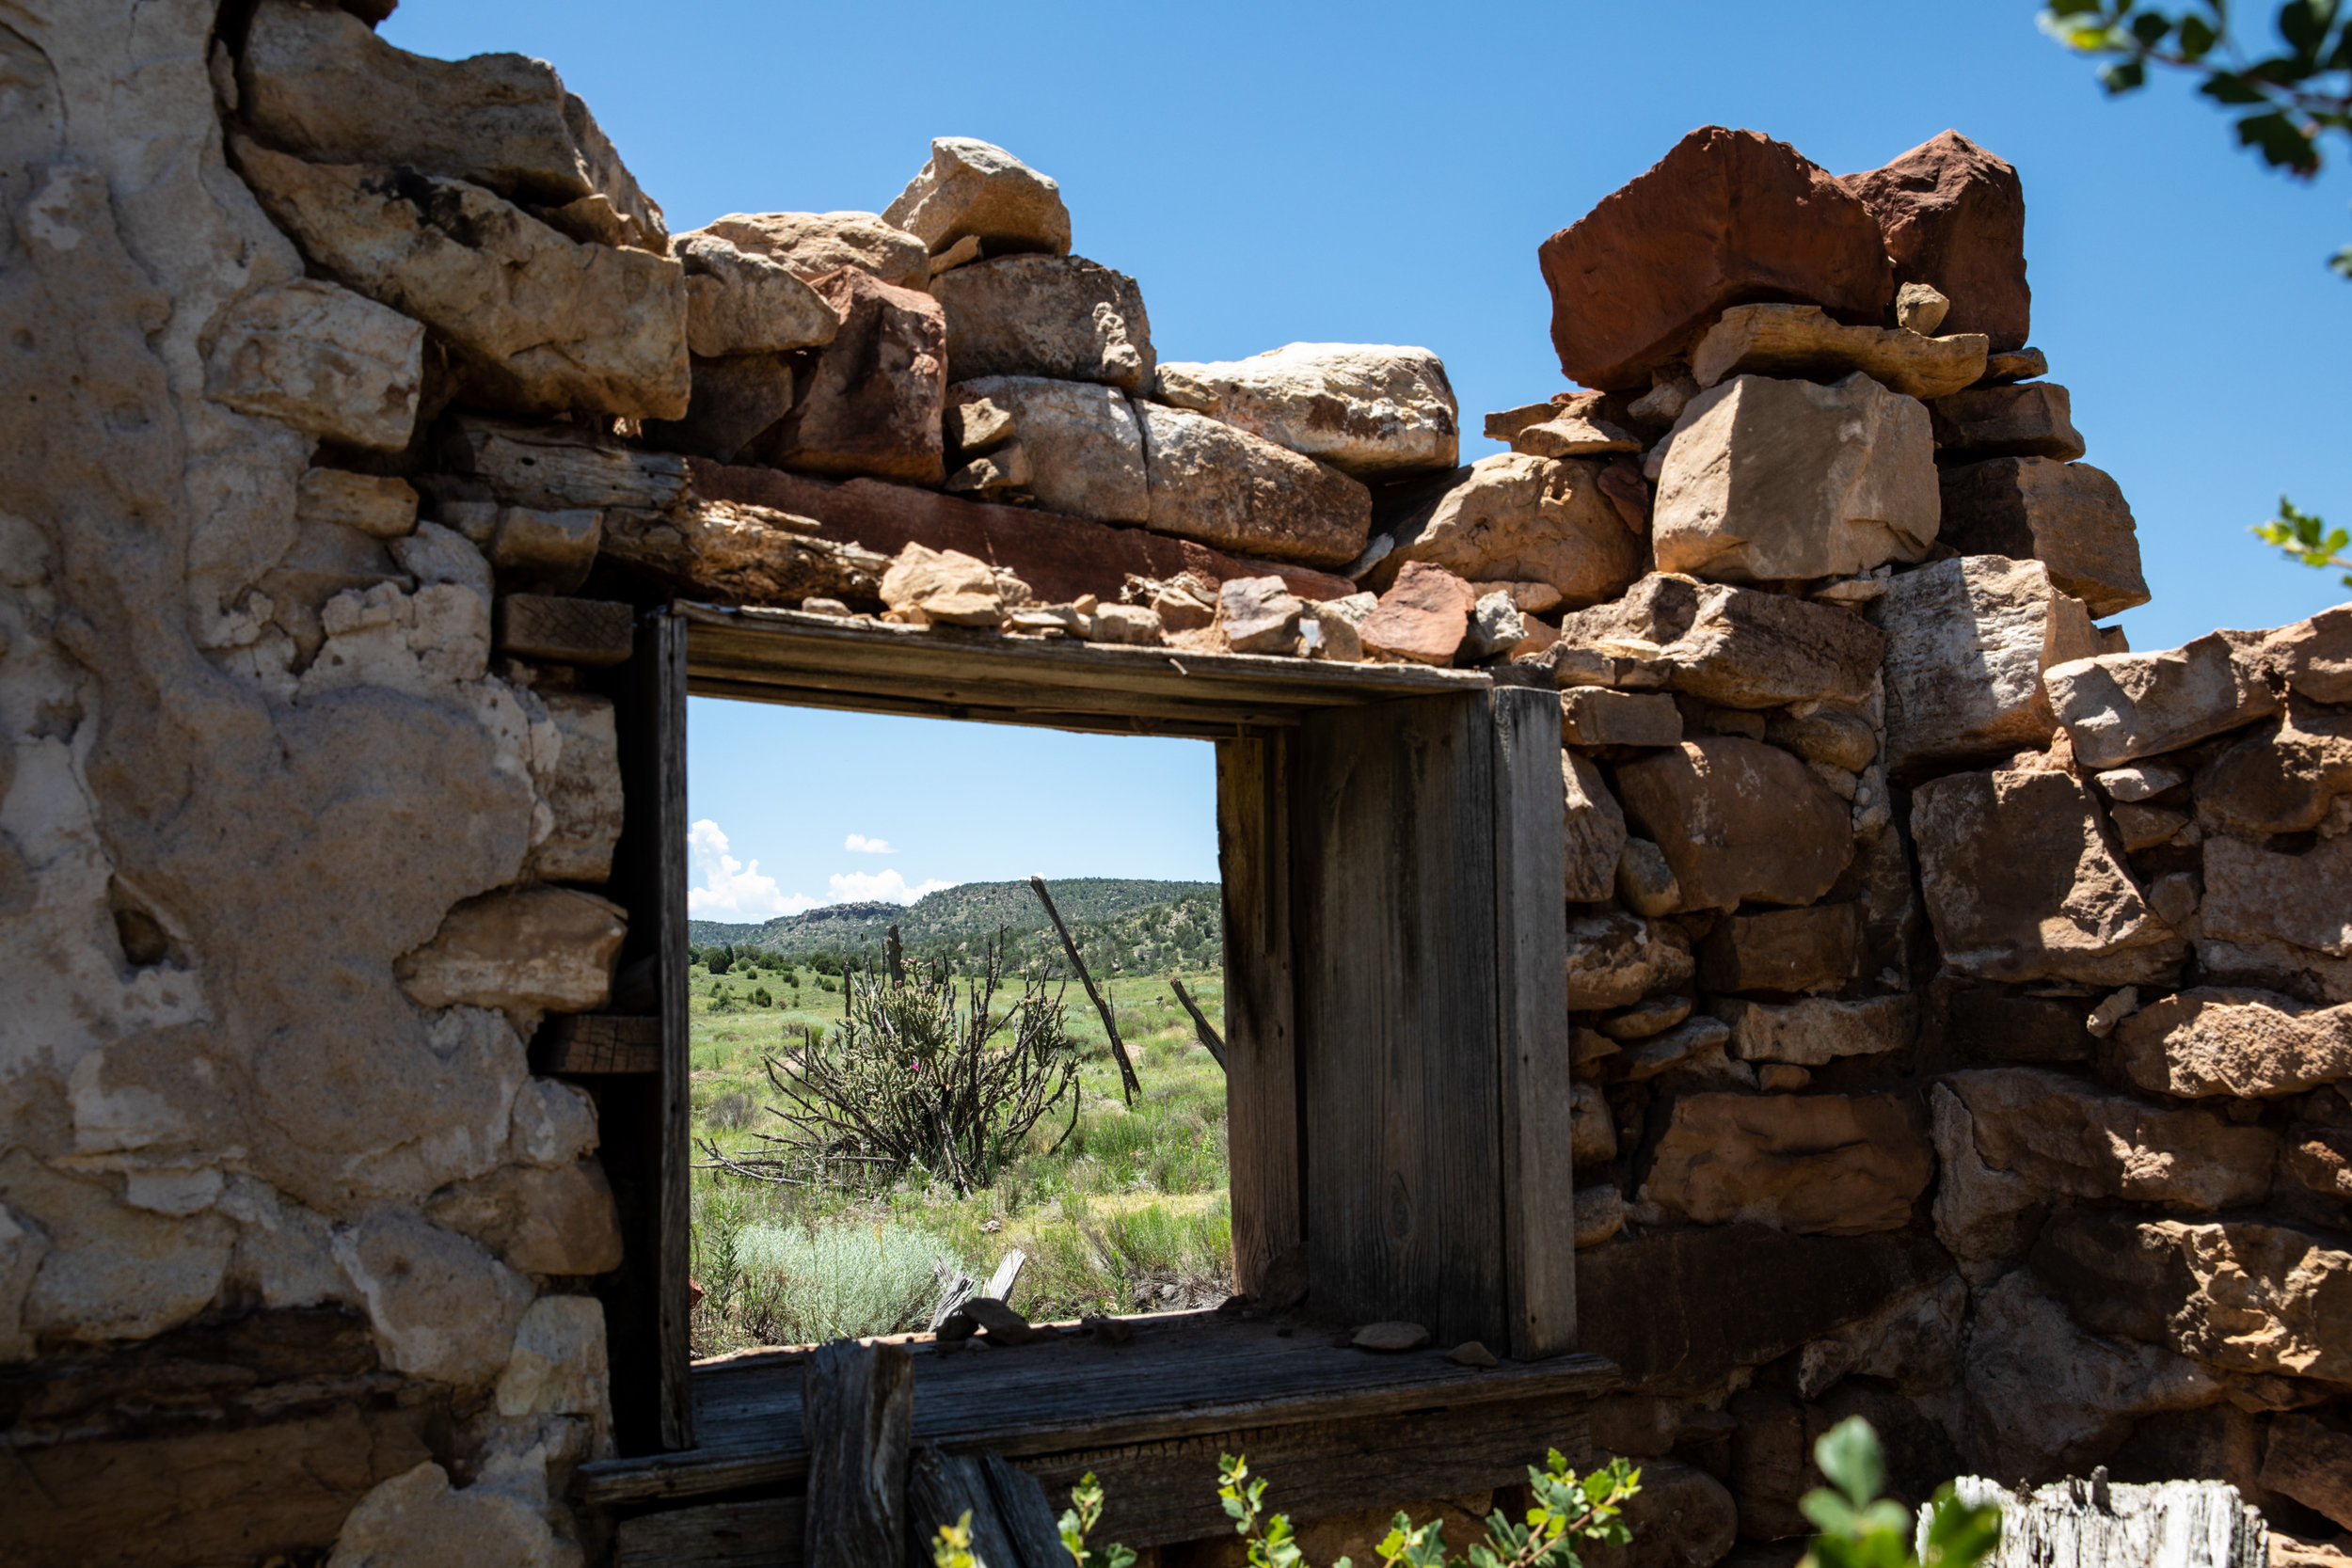 Old homestead in Cobert Canyon